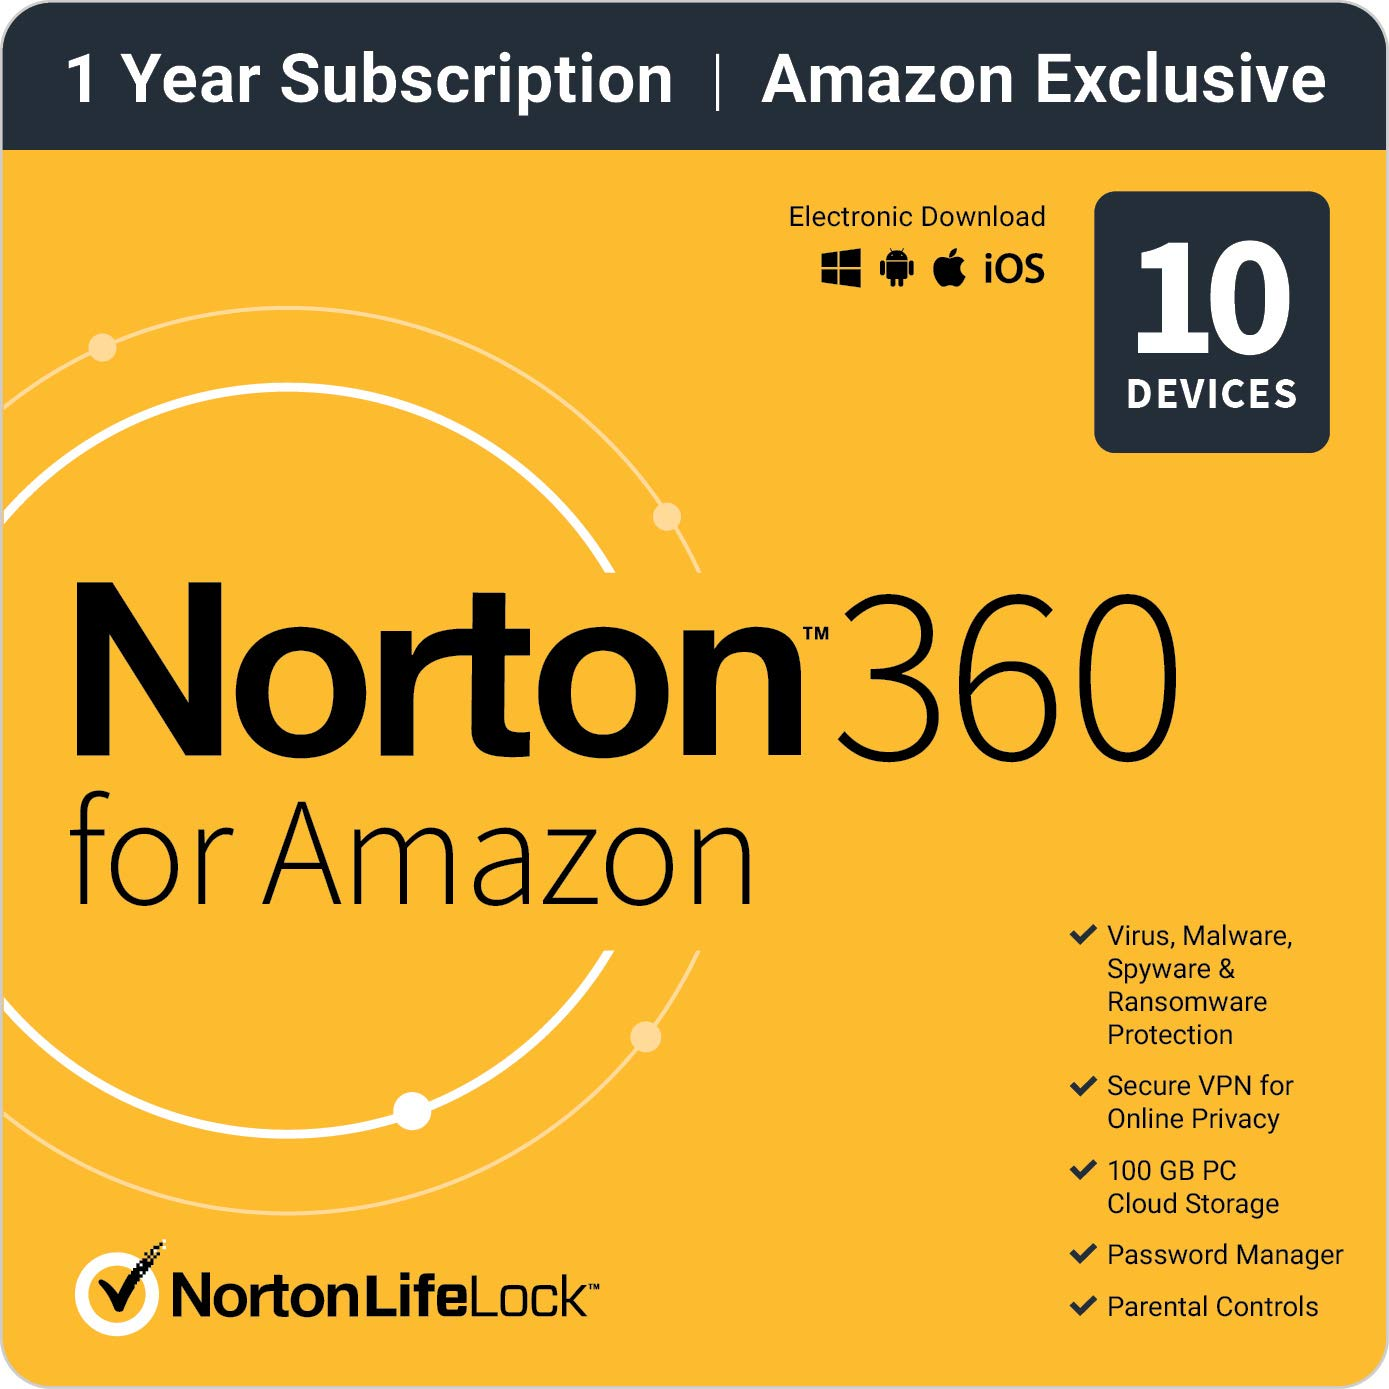 Norton 360 for Amazon  Antivirus software for up to 10 Devices with Auto Renewal